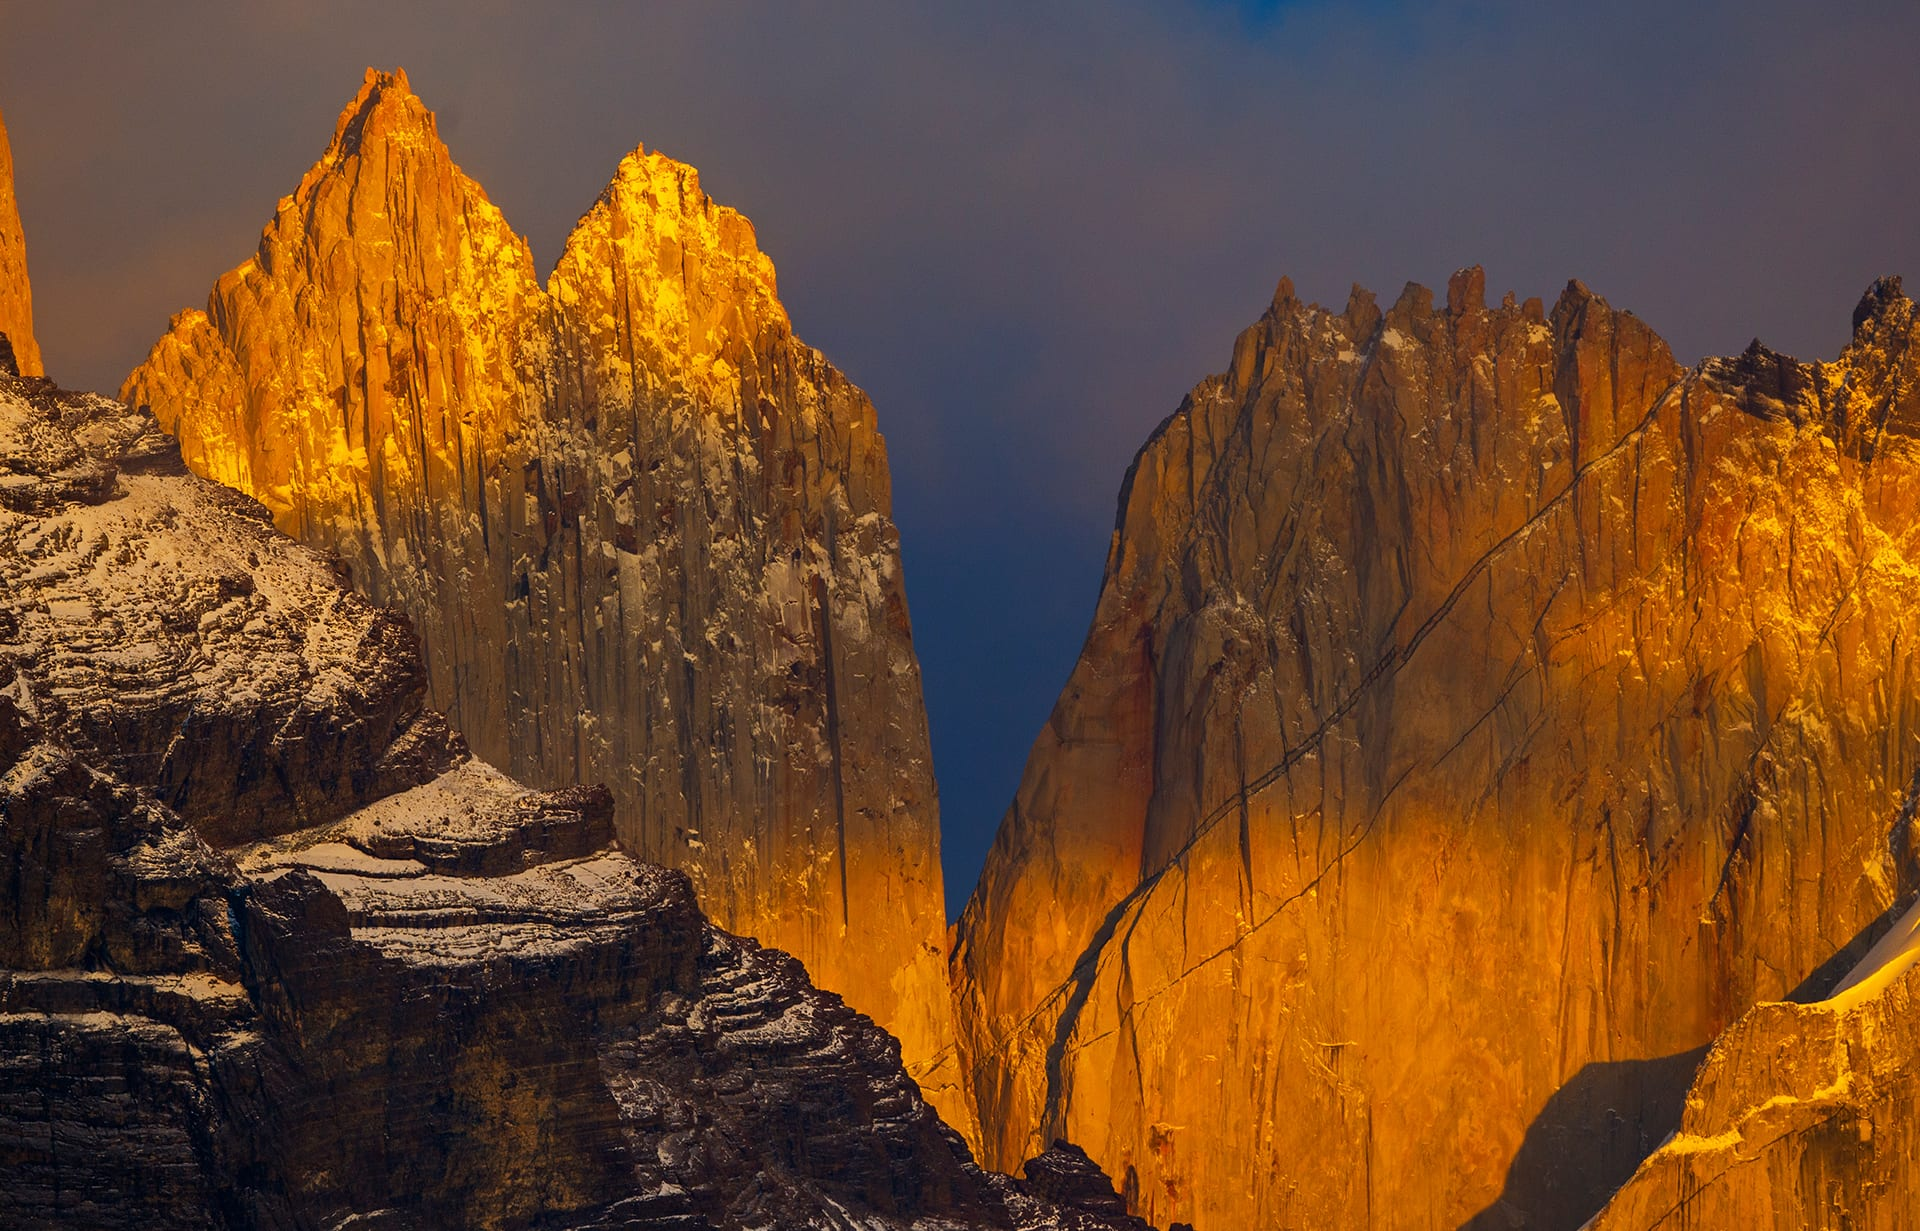 """The three granite peaks are the Torres del Paine or """"towers of blue"""". They are surrounded by spectacular glaciers and glacial lakes, rivers and waterfalls, wildlife and wilderness. At sunrise, I caught them looking more like slabs of gold, dusted with bits of snow, than blue granite."""